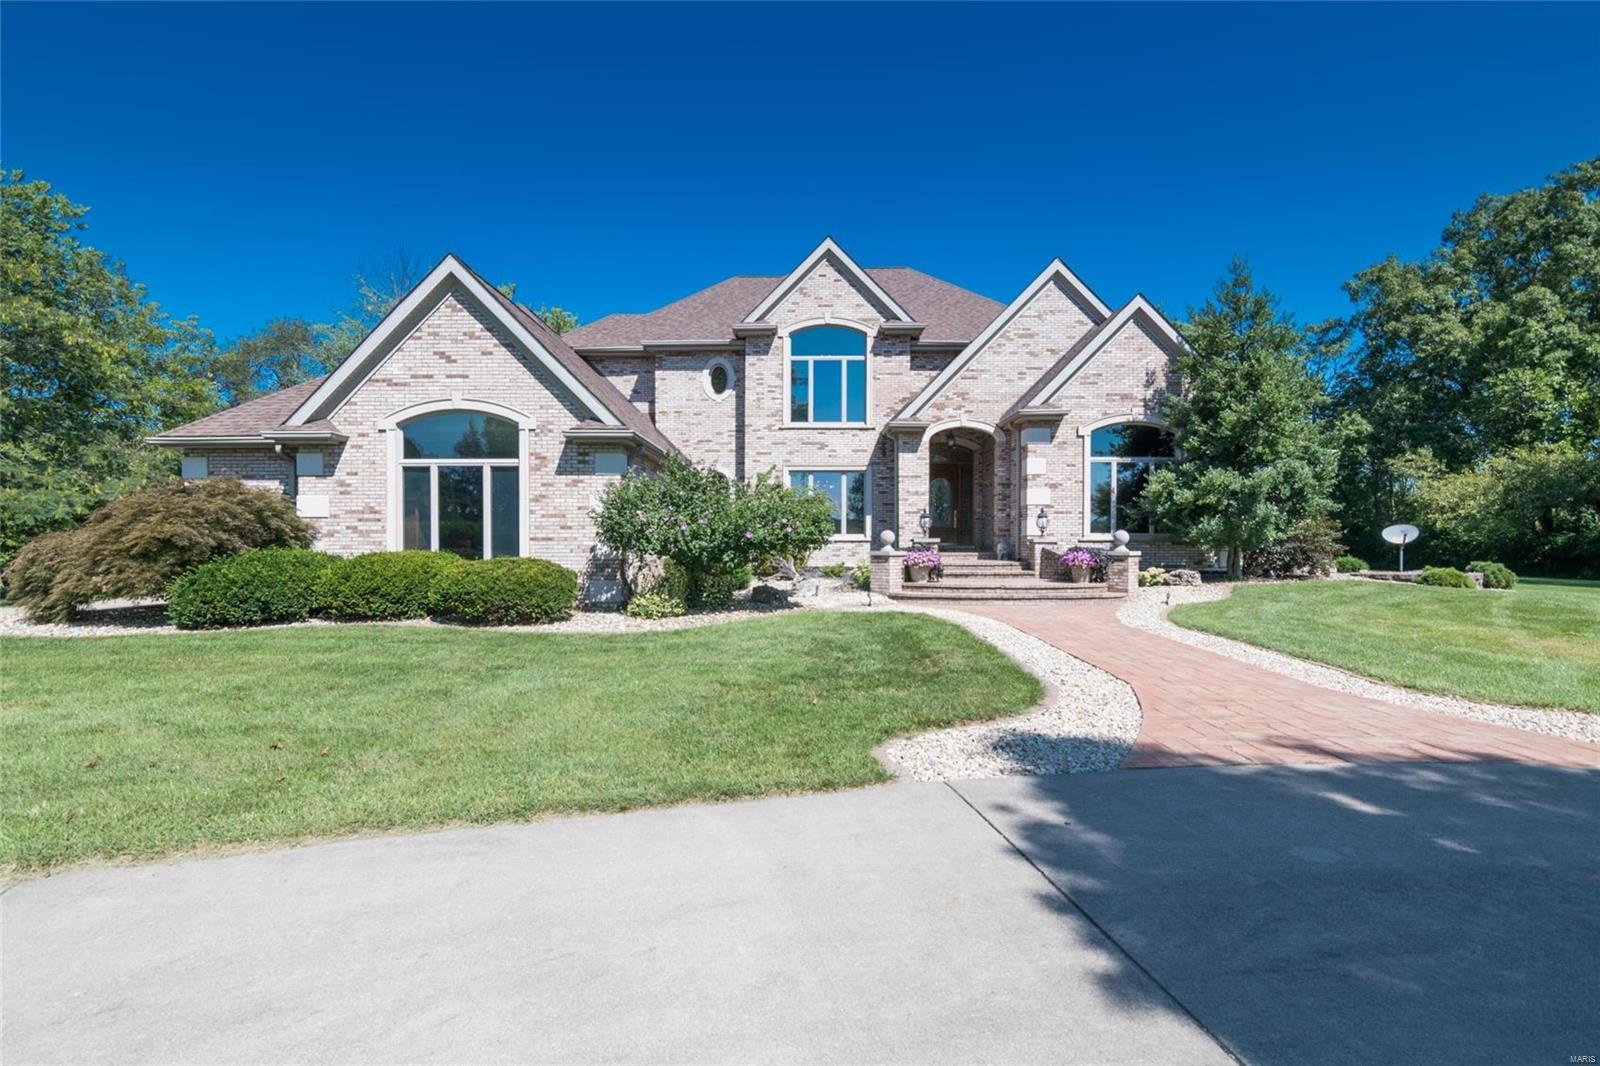 614 Lower Marine Road Property Photo - Troy, IL real estate listing